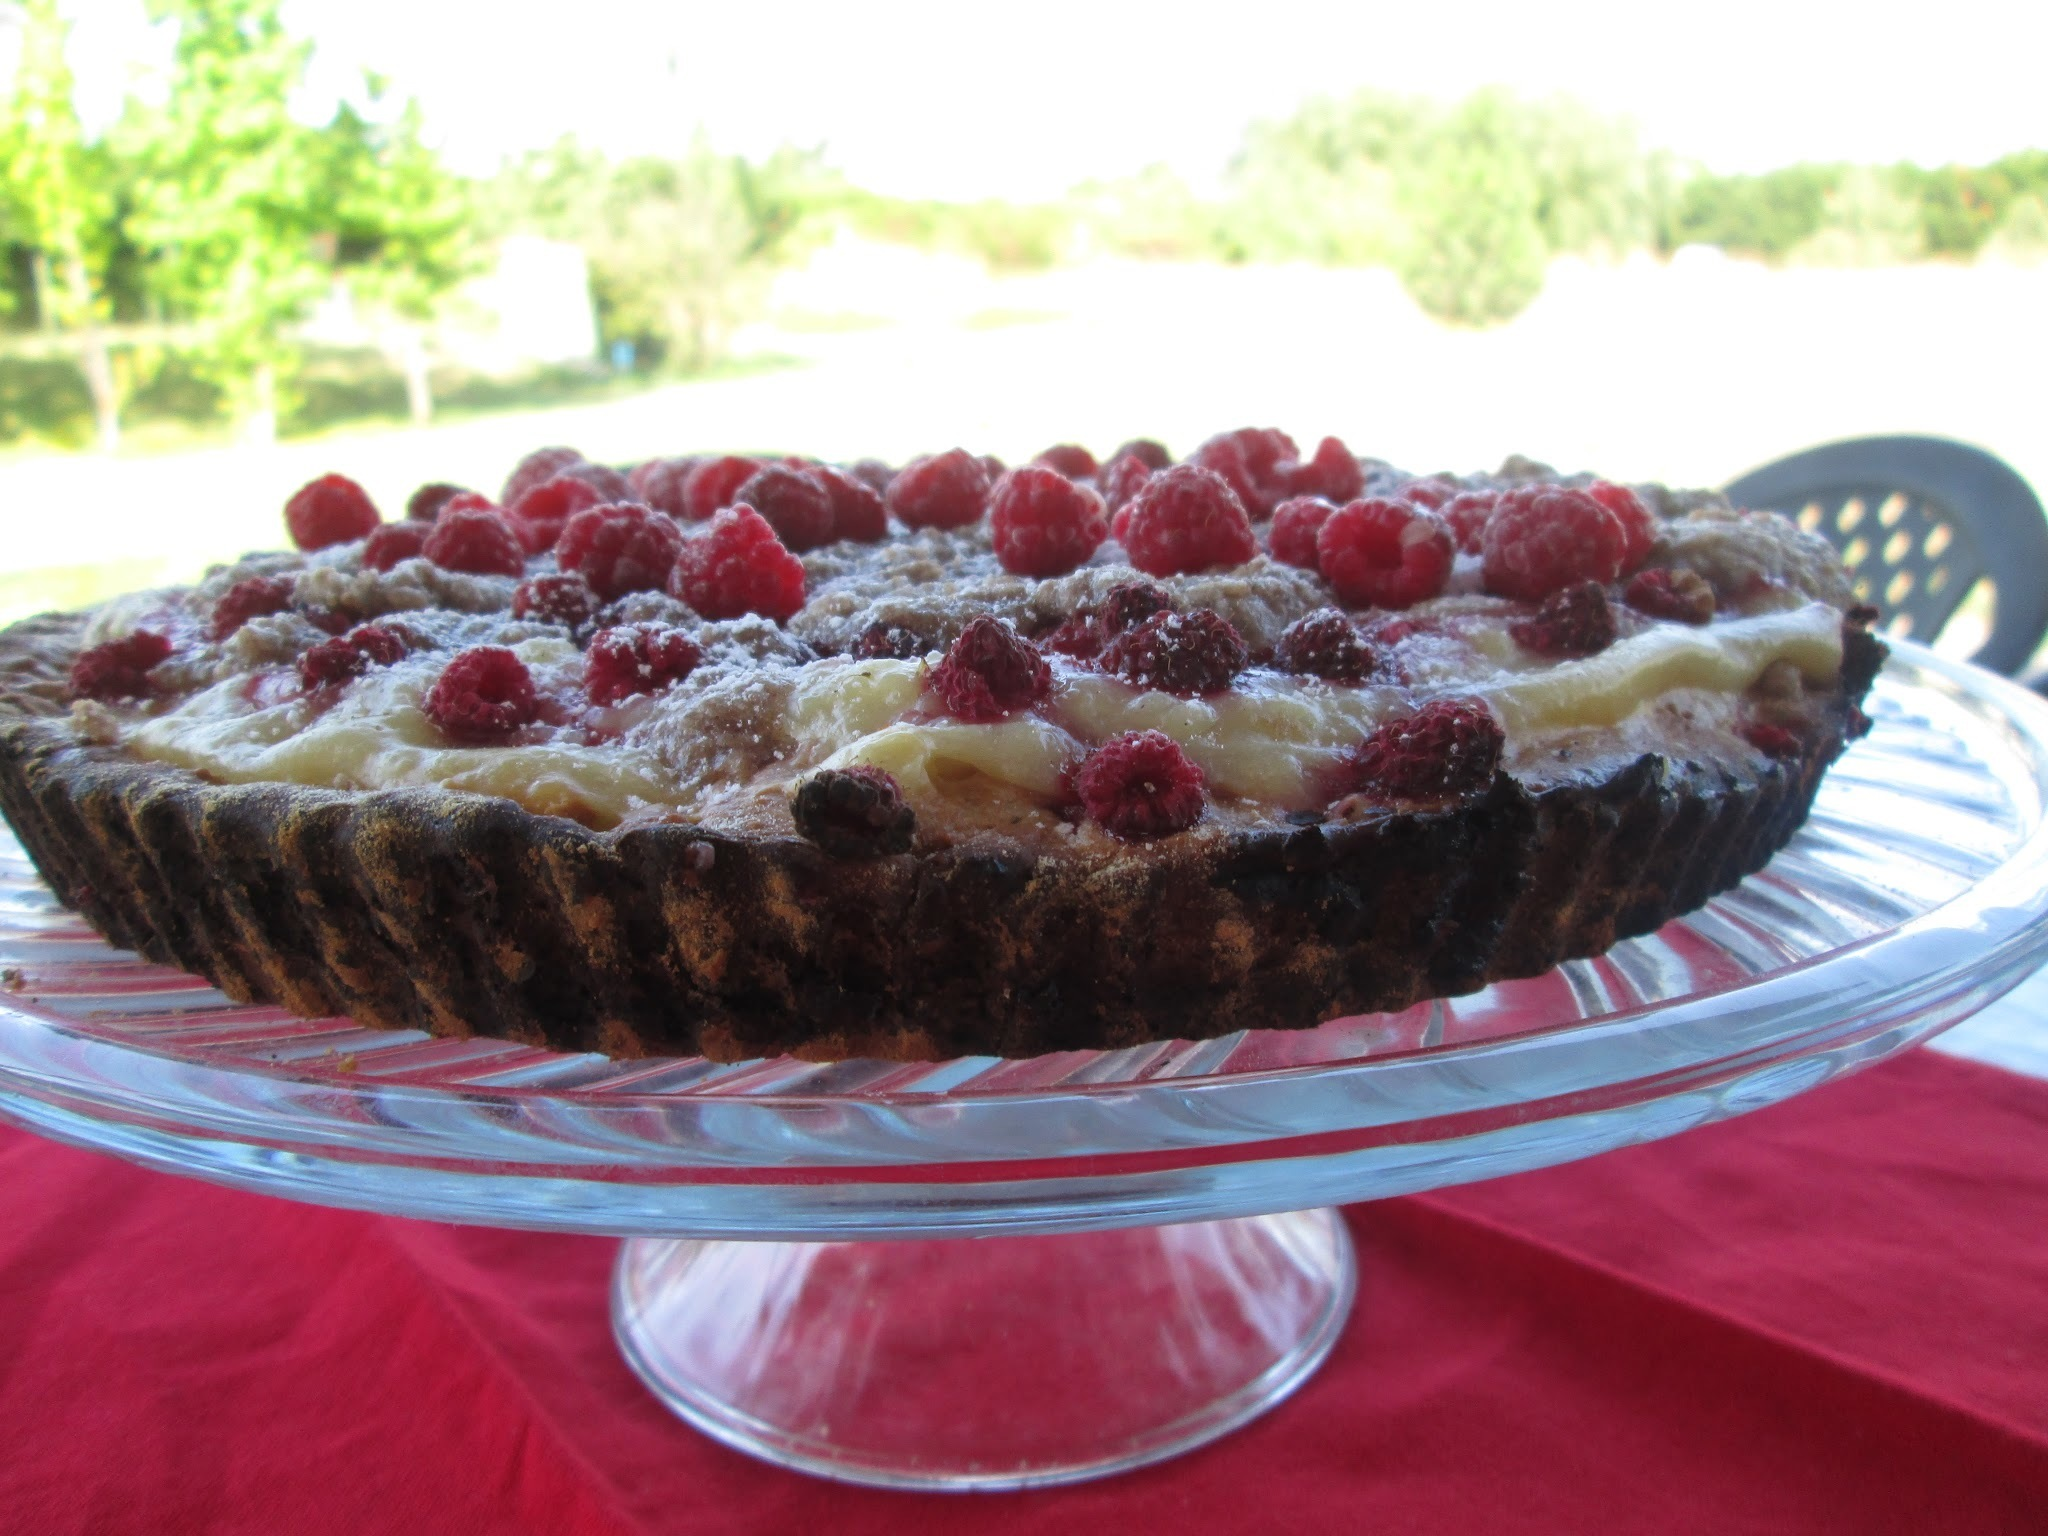 Raspberries kuchen with vanilla cream and streusel